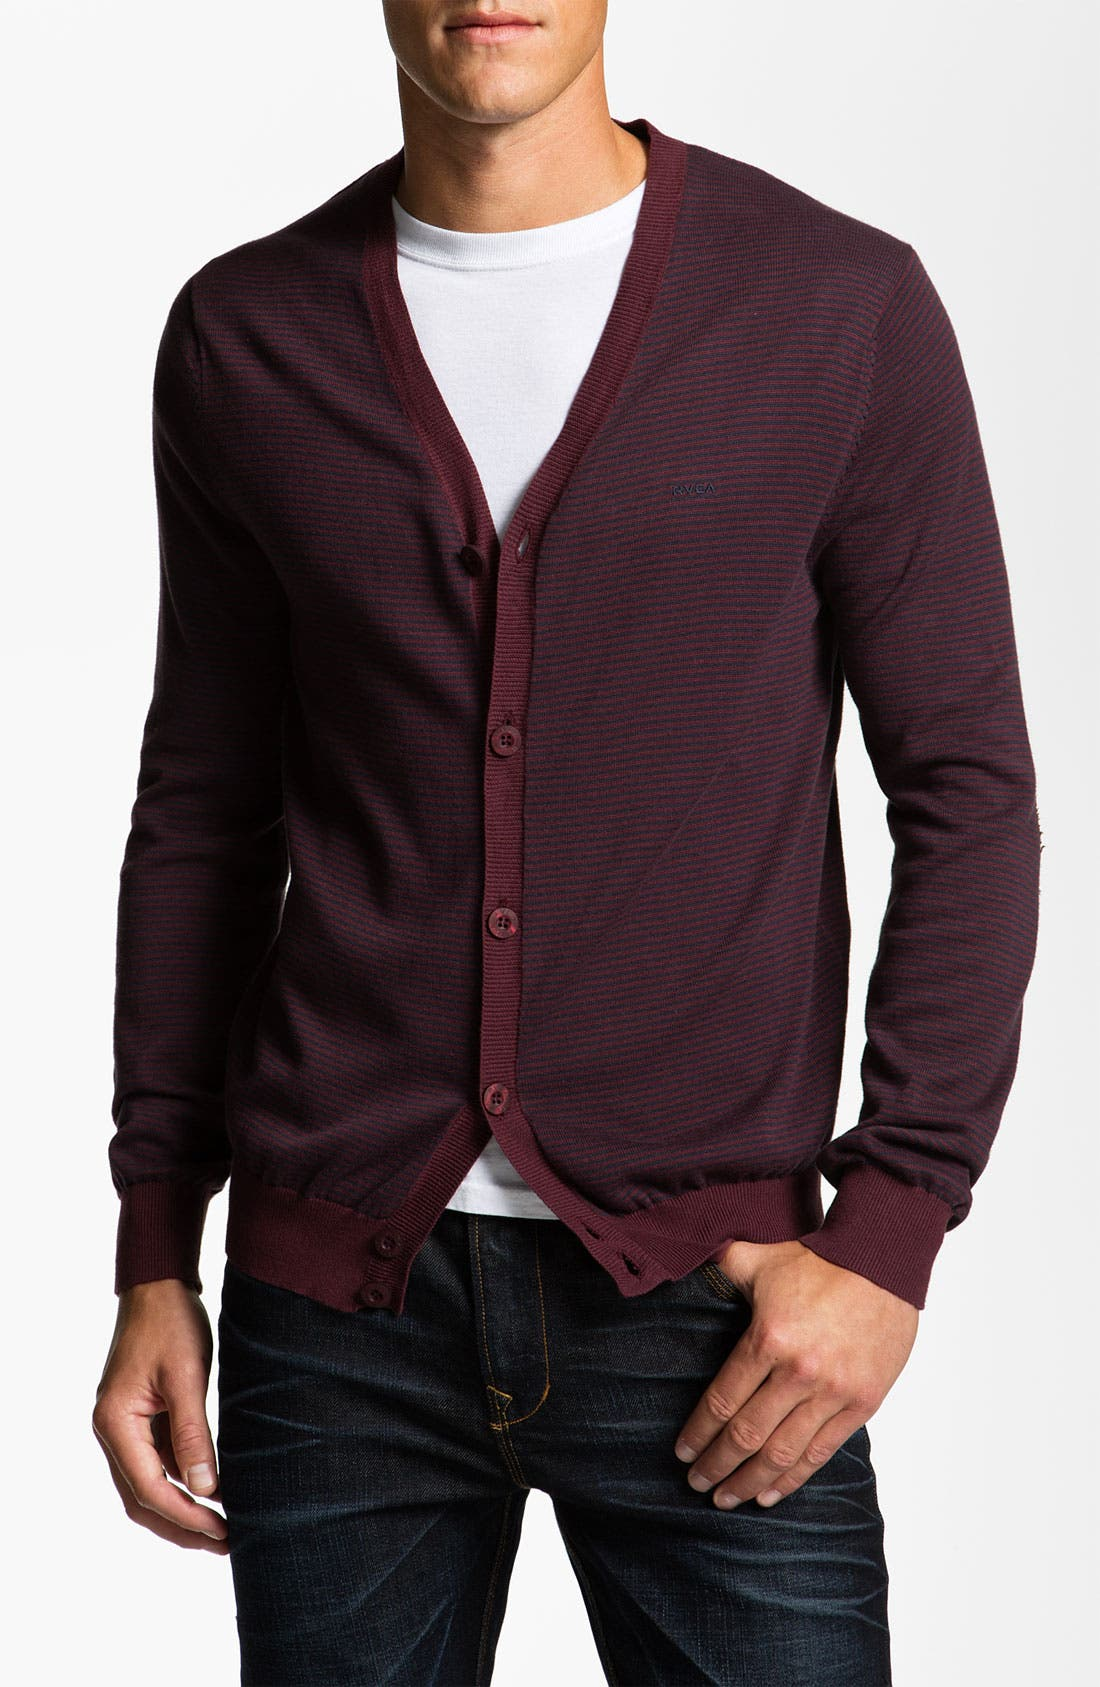 Alternate Image 1 Selected - RVCA 'Barge' Cardigan